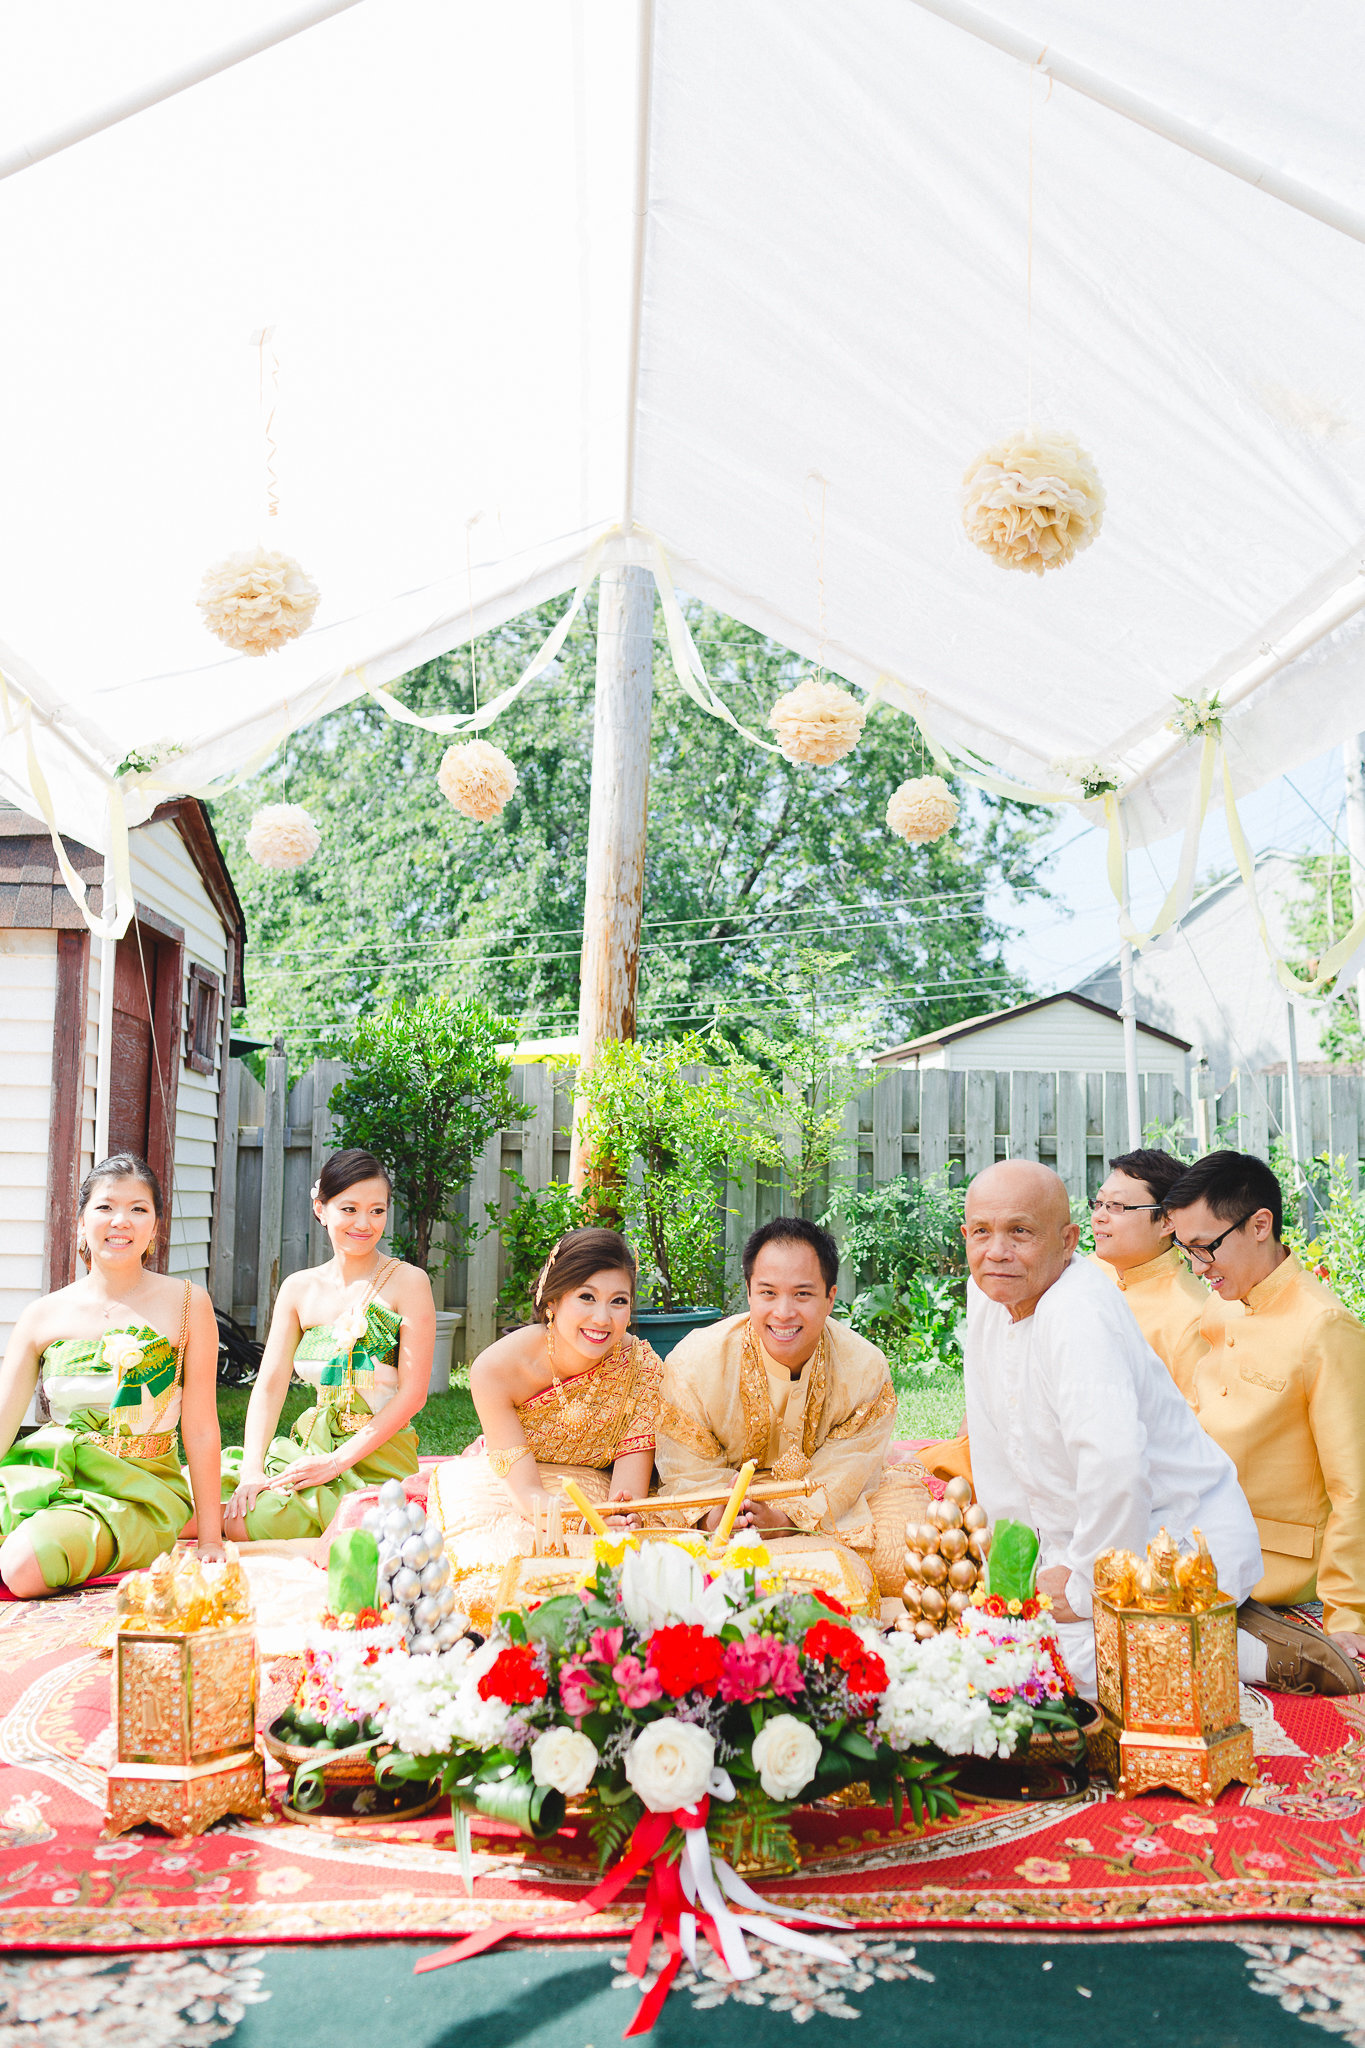 photographe-montreal-mariage-culturel-traditionnel-cambodgien-lisa-renault-photographie-traditional-cultural-cambodian-wedding-56